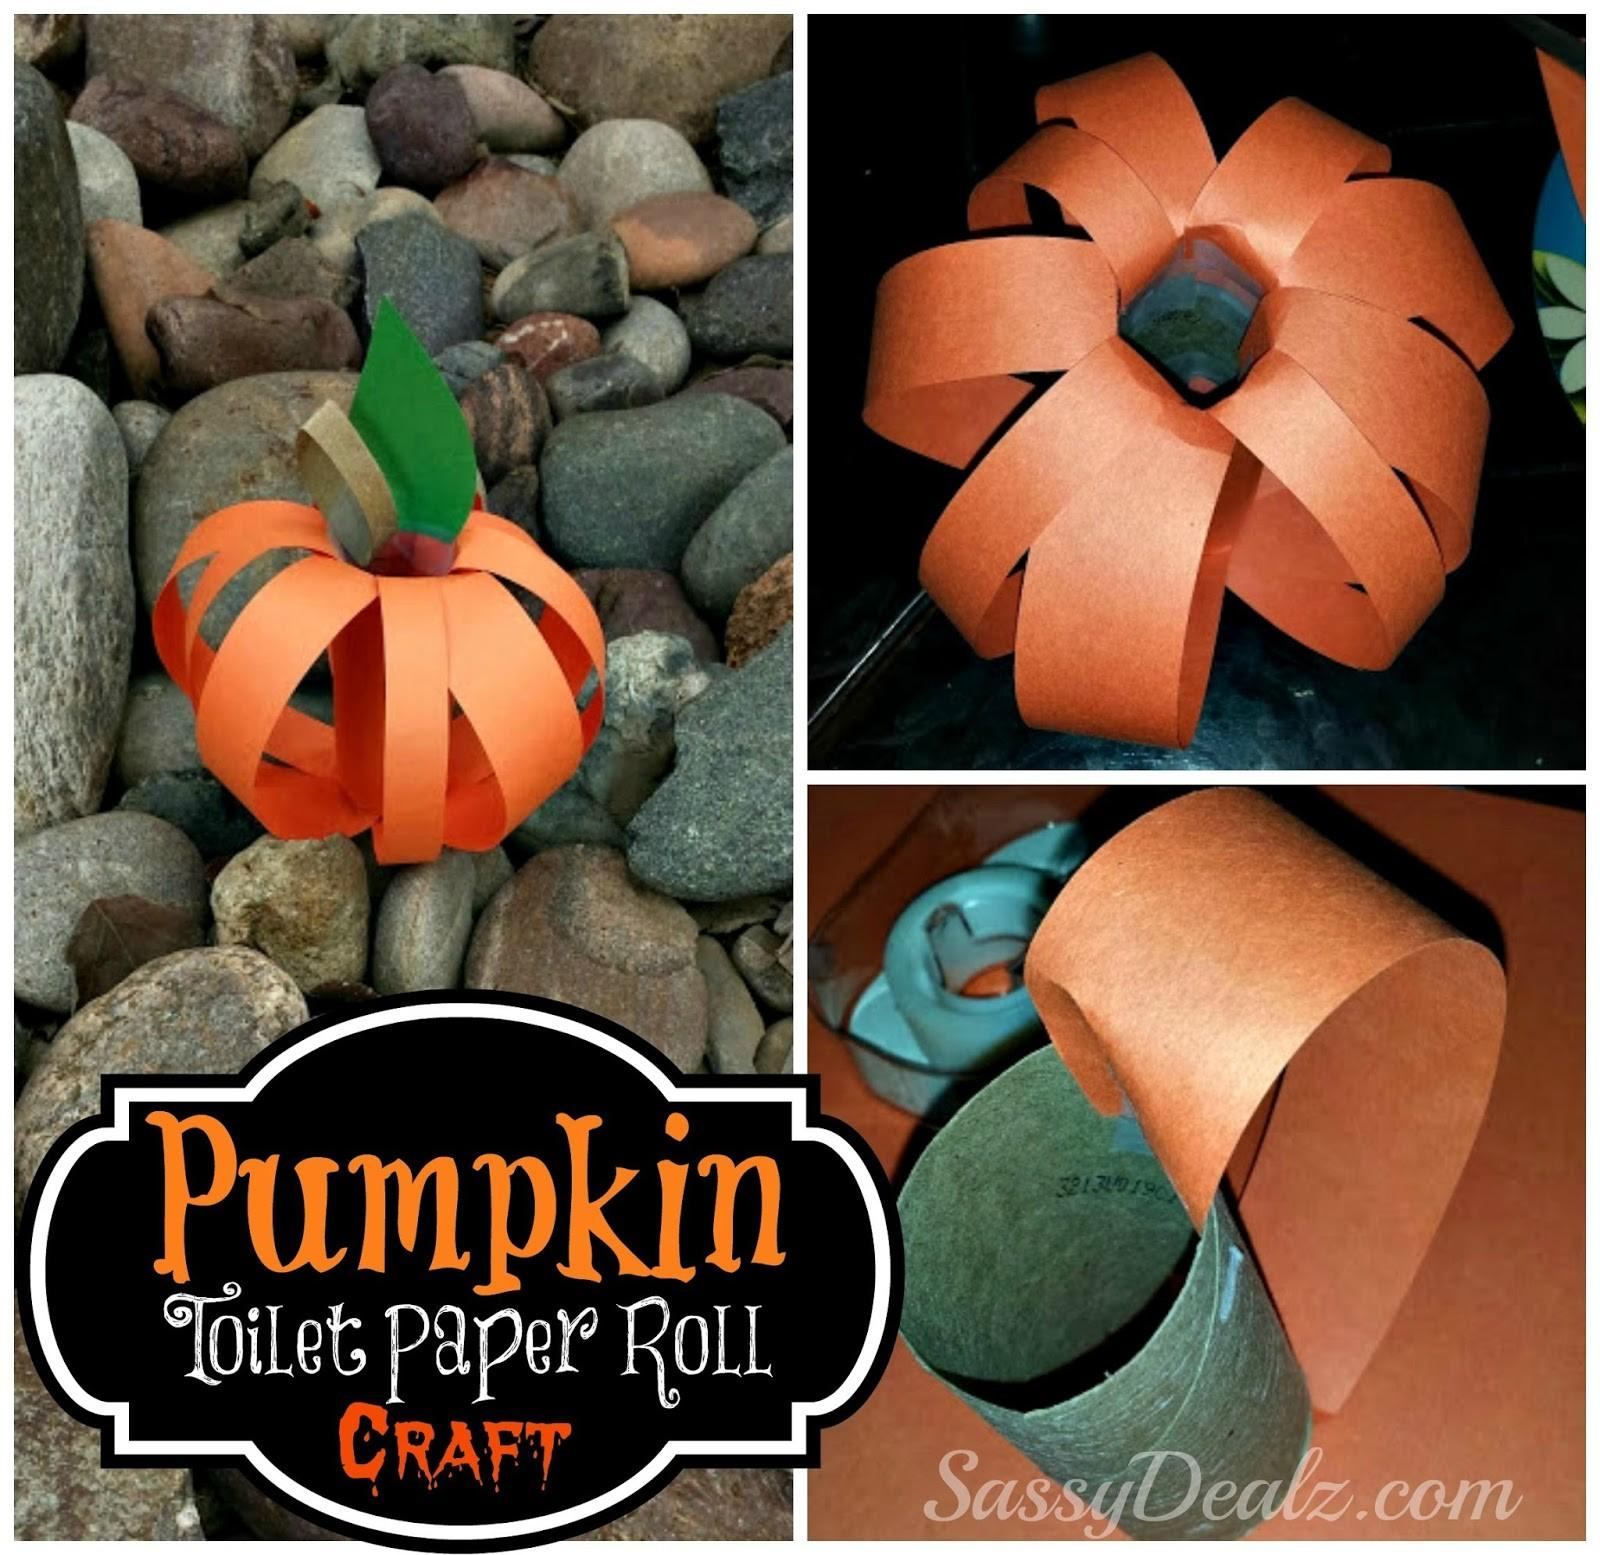 Pumpkin Toilet Paper Roll Craft Kids Halloween Idea